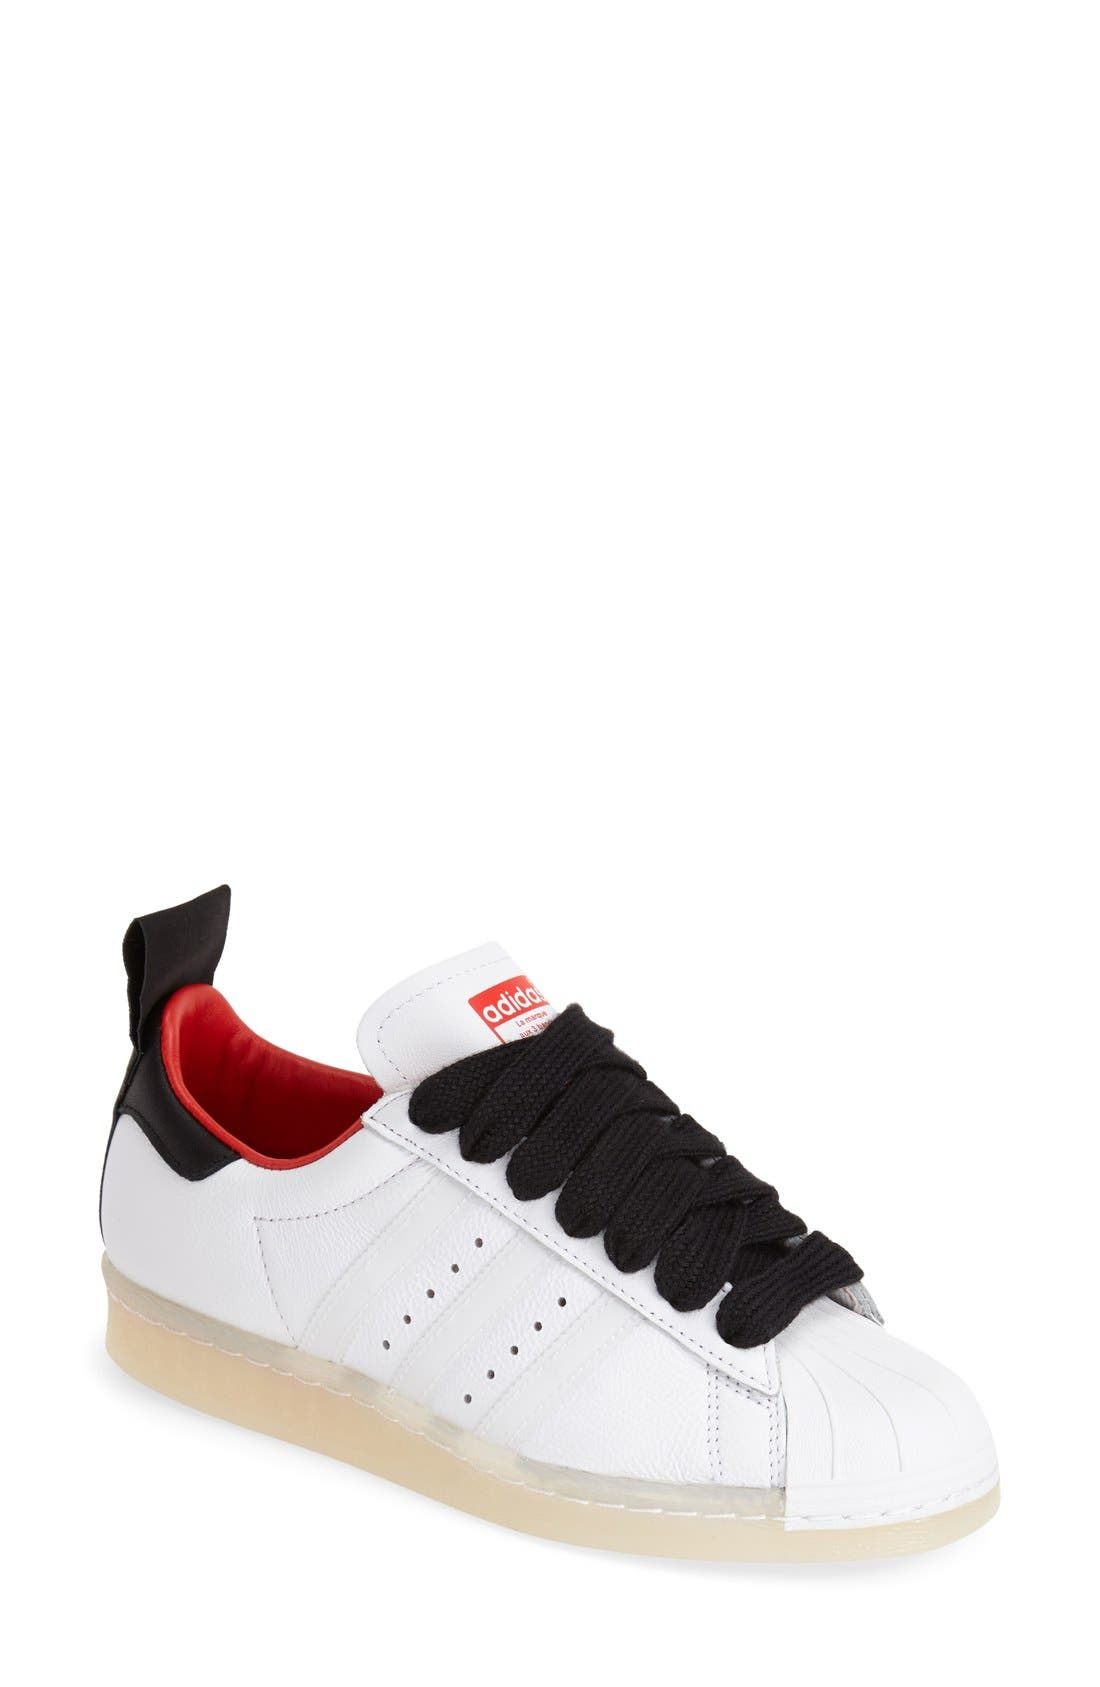 Alternate Image 1 Selected - Topshop for adidas Originals 'Superstar 80s' Leather Sneaker (Women)